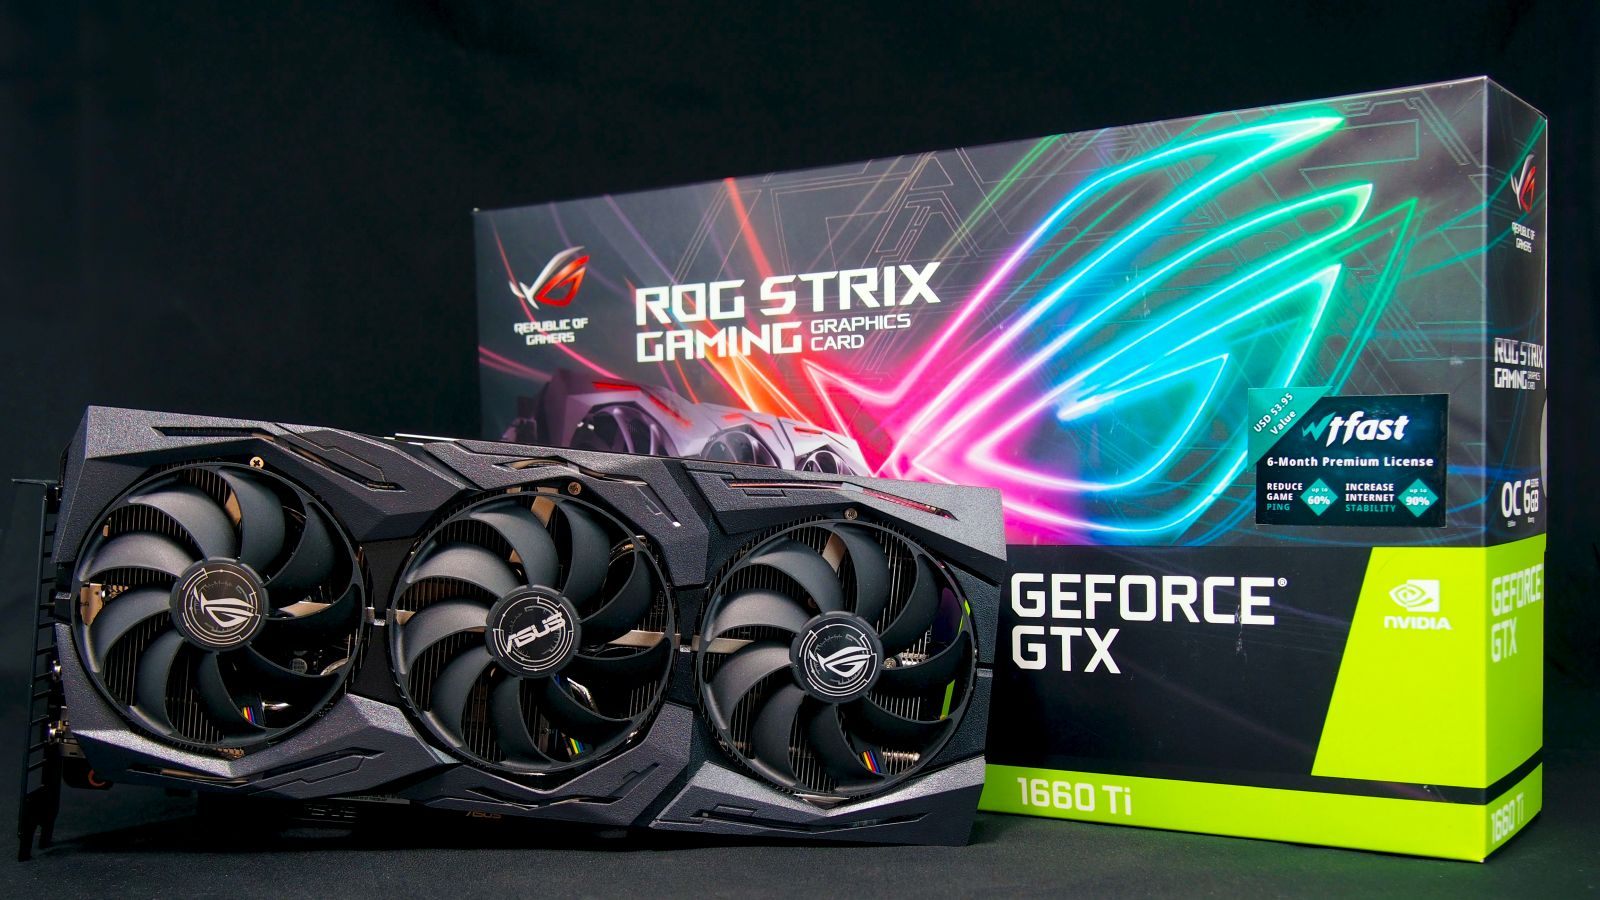 Обзор и тест видеокарты ASUS ROG Strix GeForce GTX 1660 Ti OC